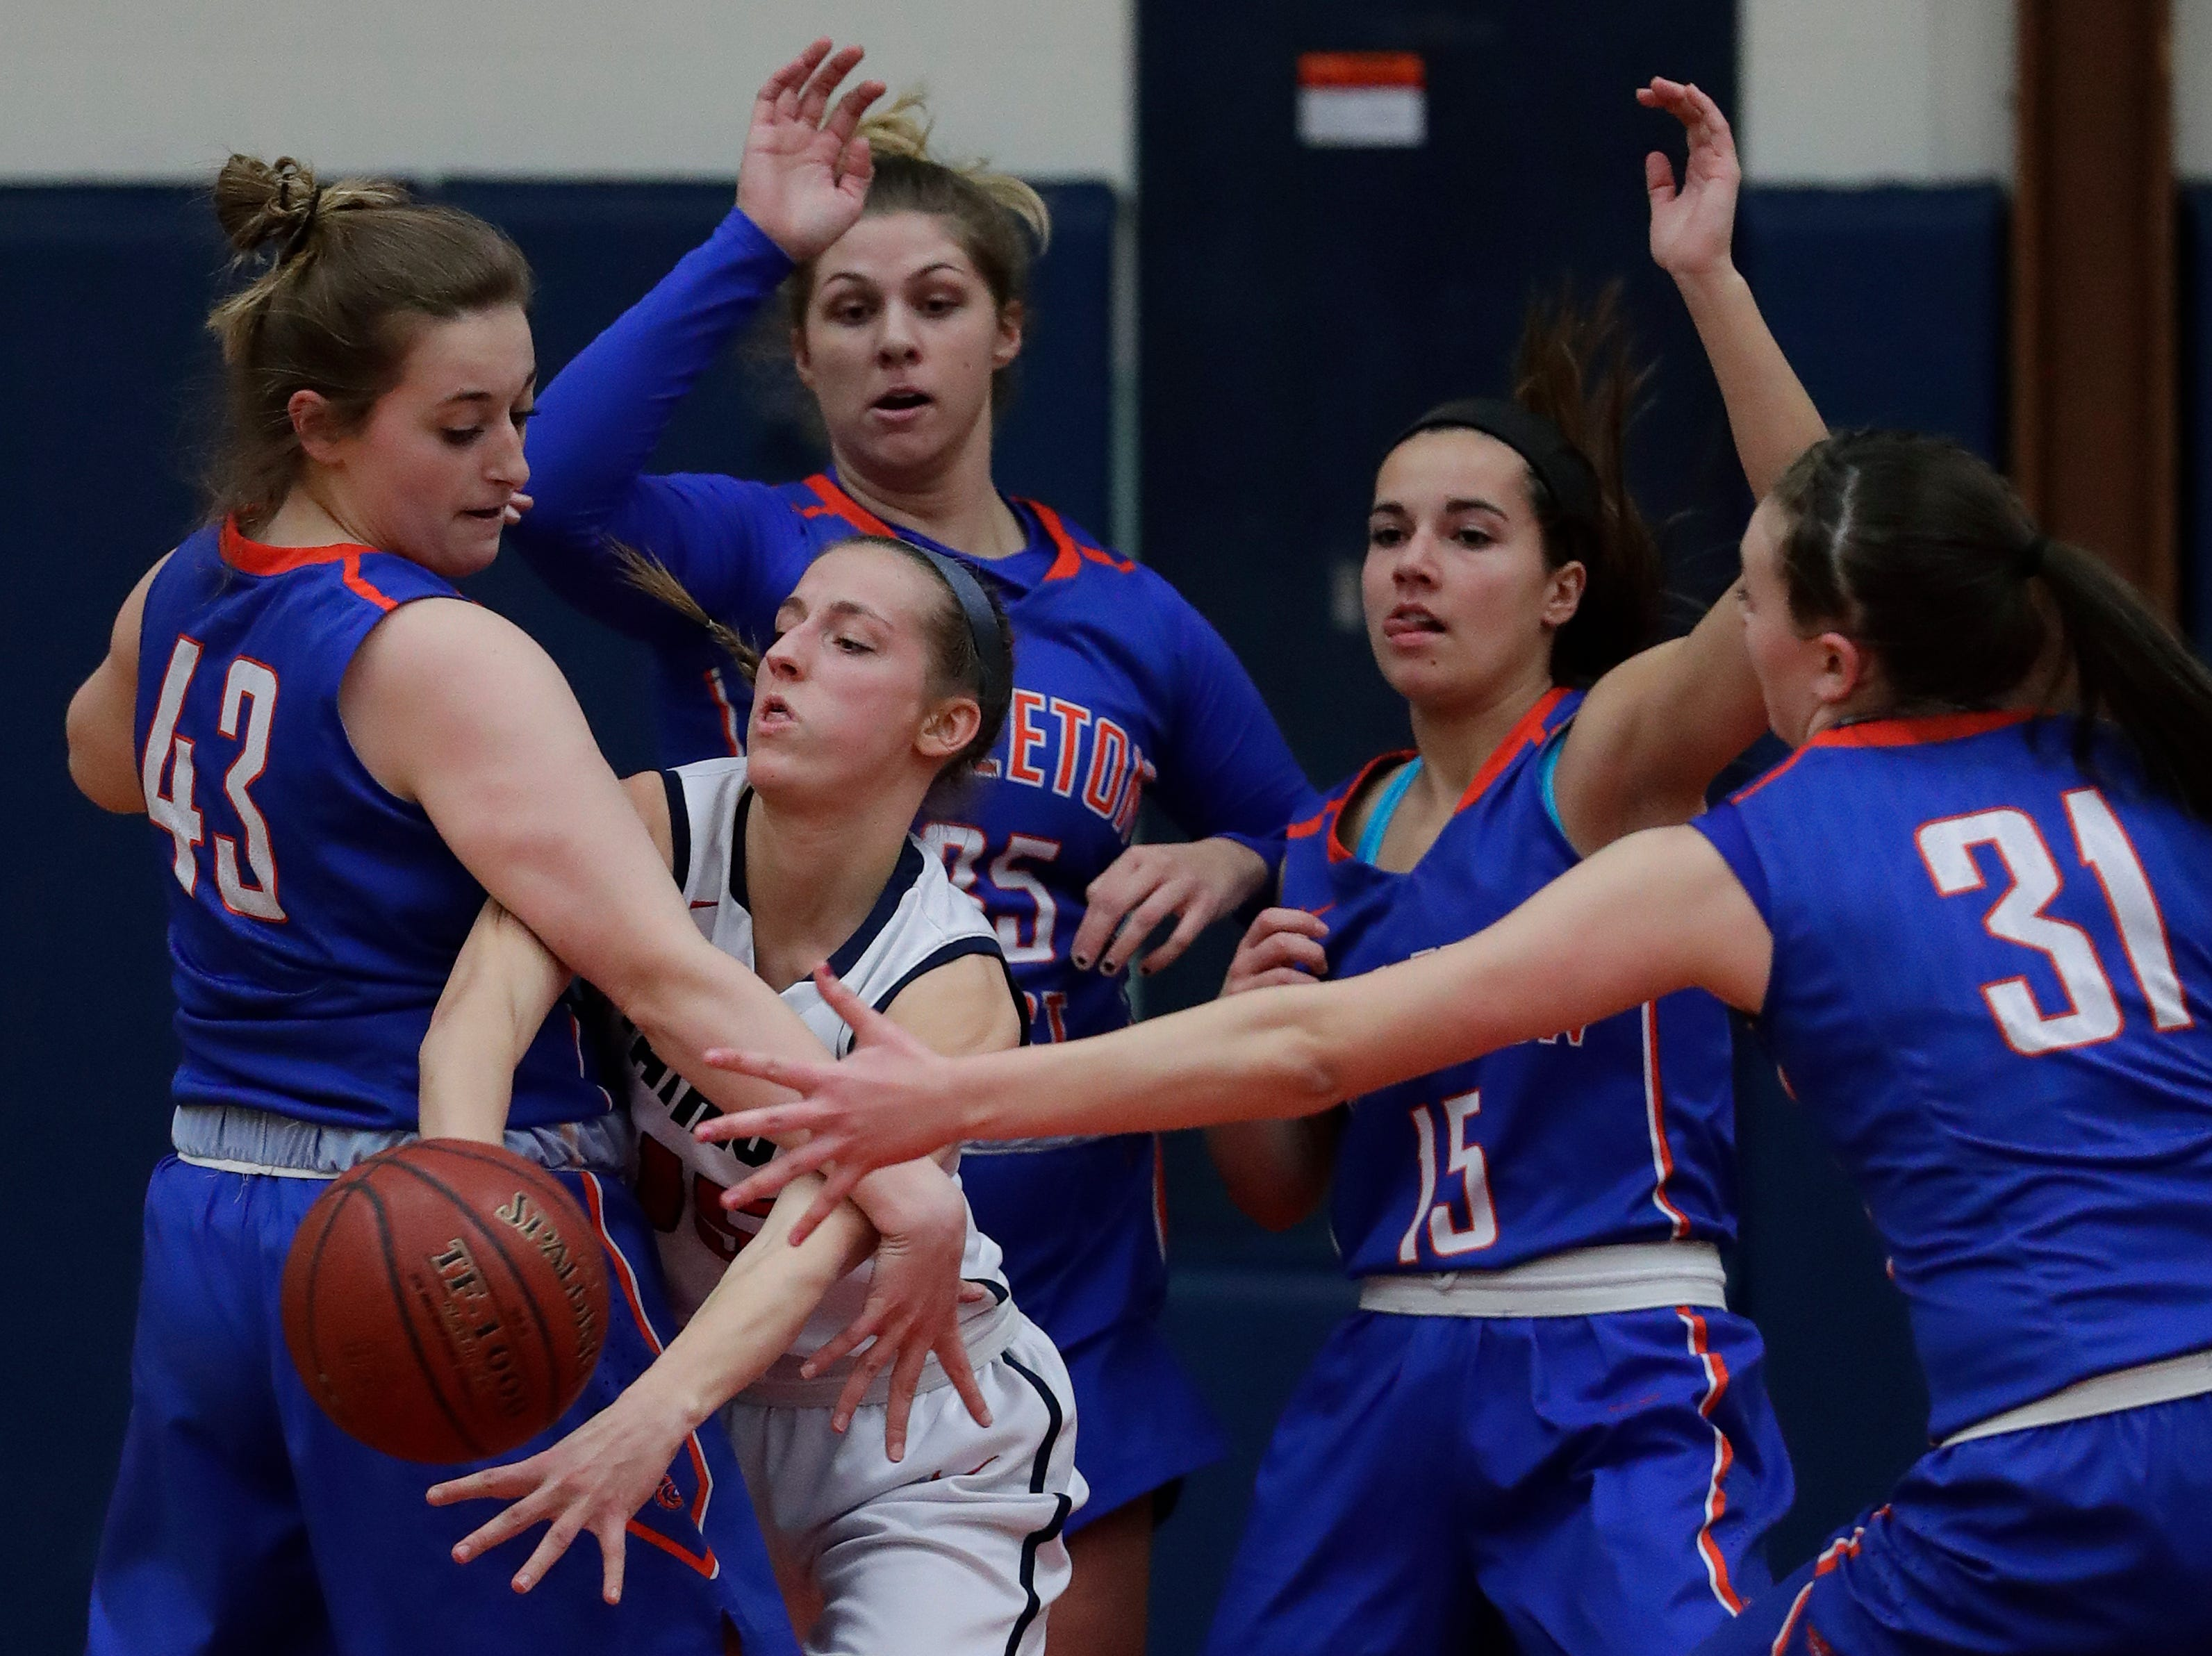 Appleton East High School's Meghan Borowski (15) is under heavy defensive pressure from Appleton West High School's Jenna Hoffman (43), Sydney Gehl (35), Addie Pauling (15) and Christy Fortune (31) during their girls basketball game Friday, January 11, 2019, at Appleton East High School in Appleton, Wis. 